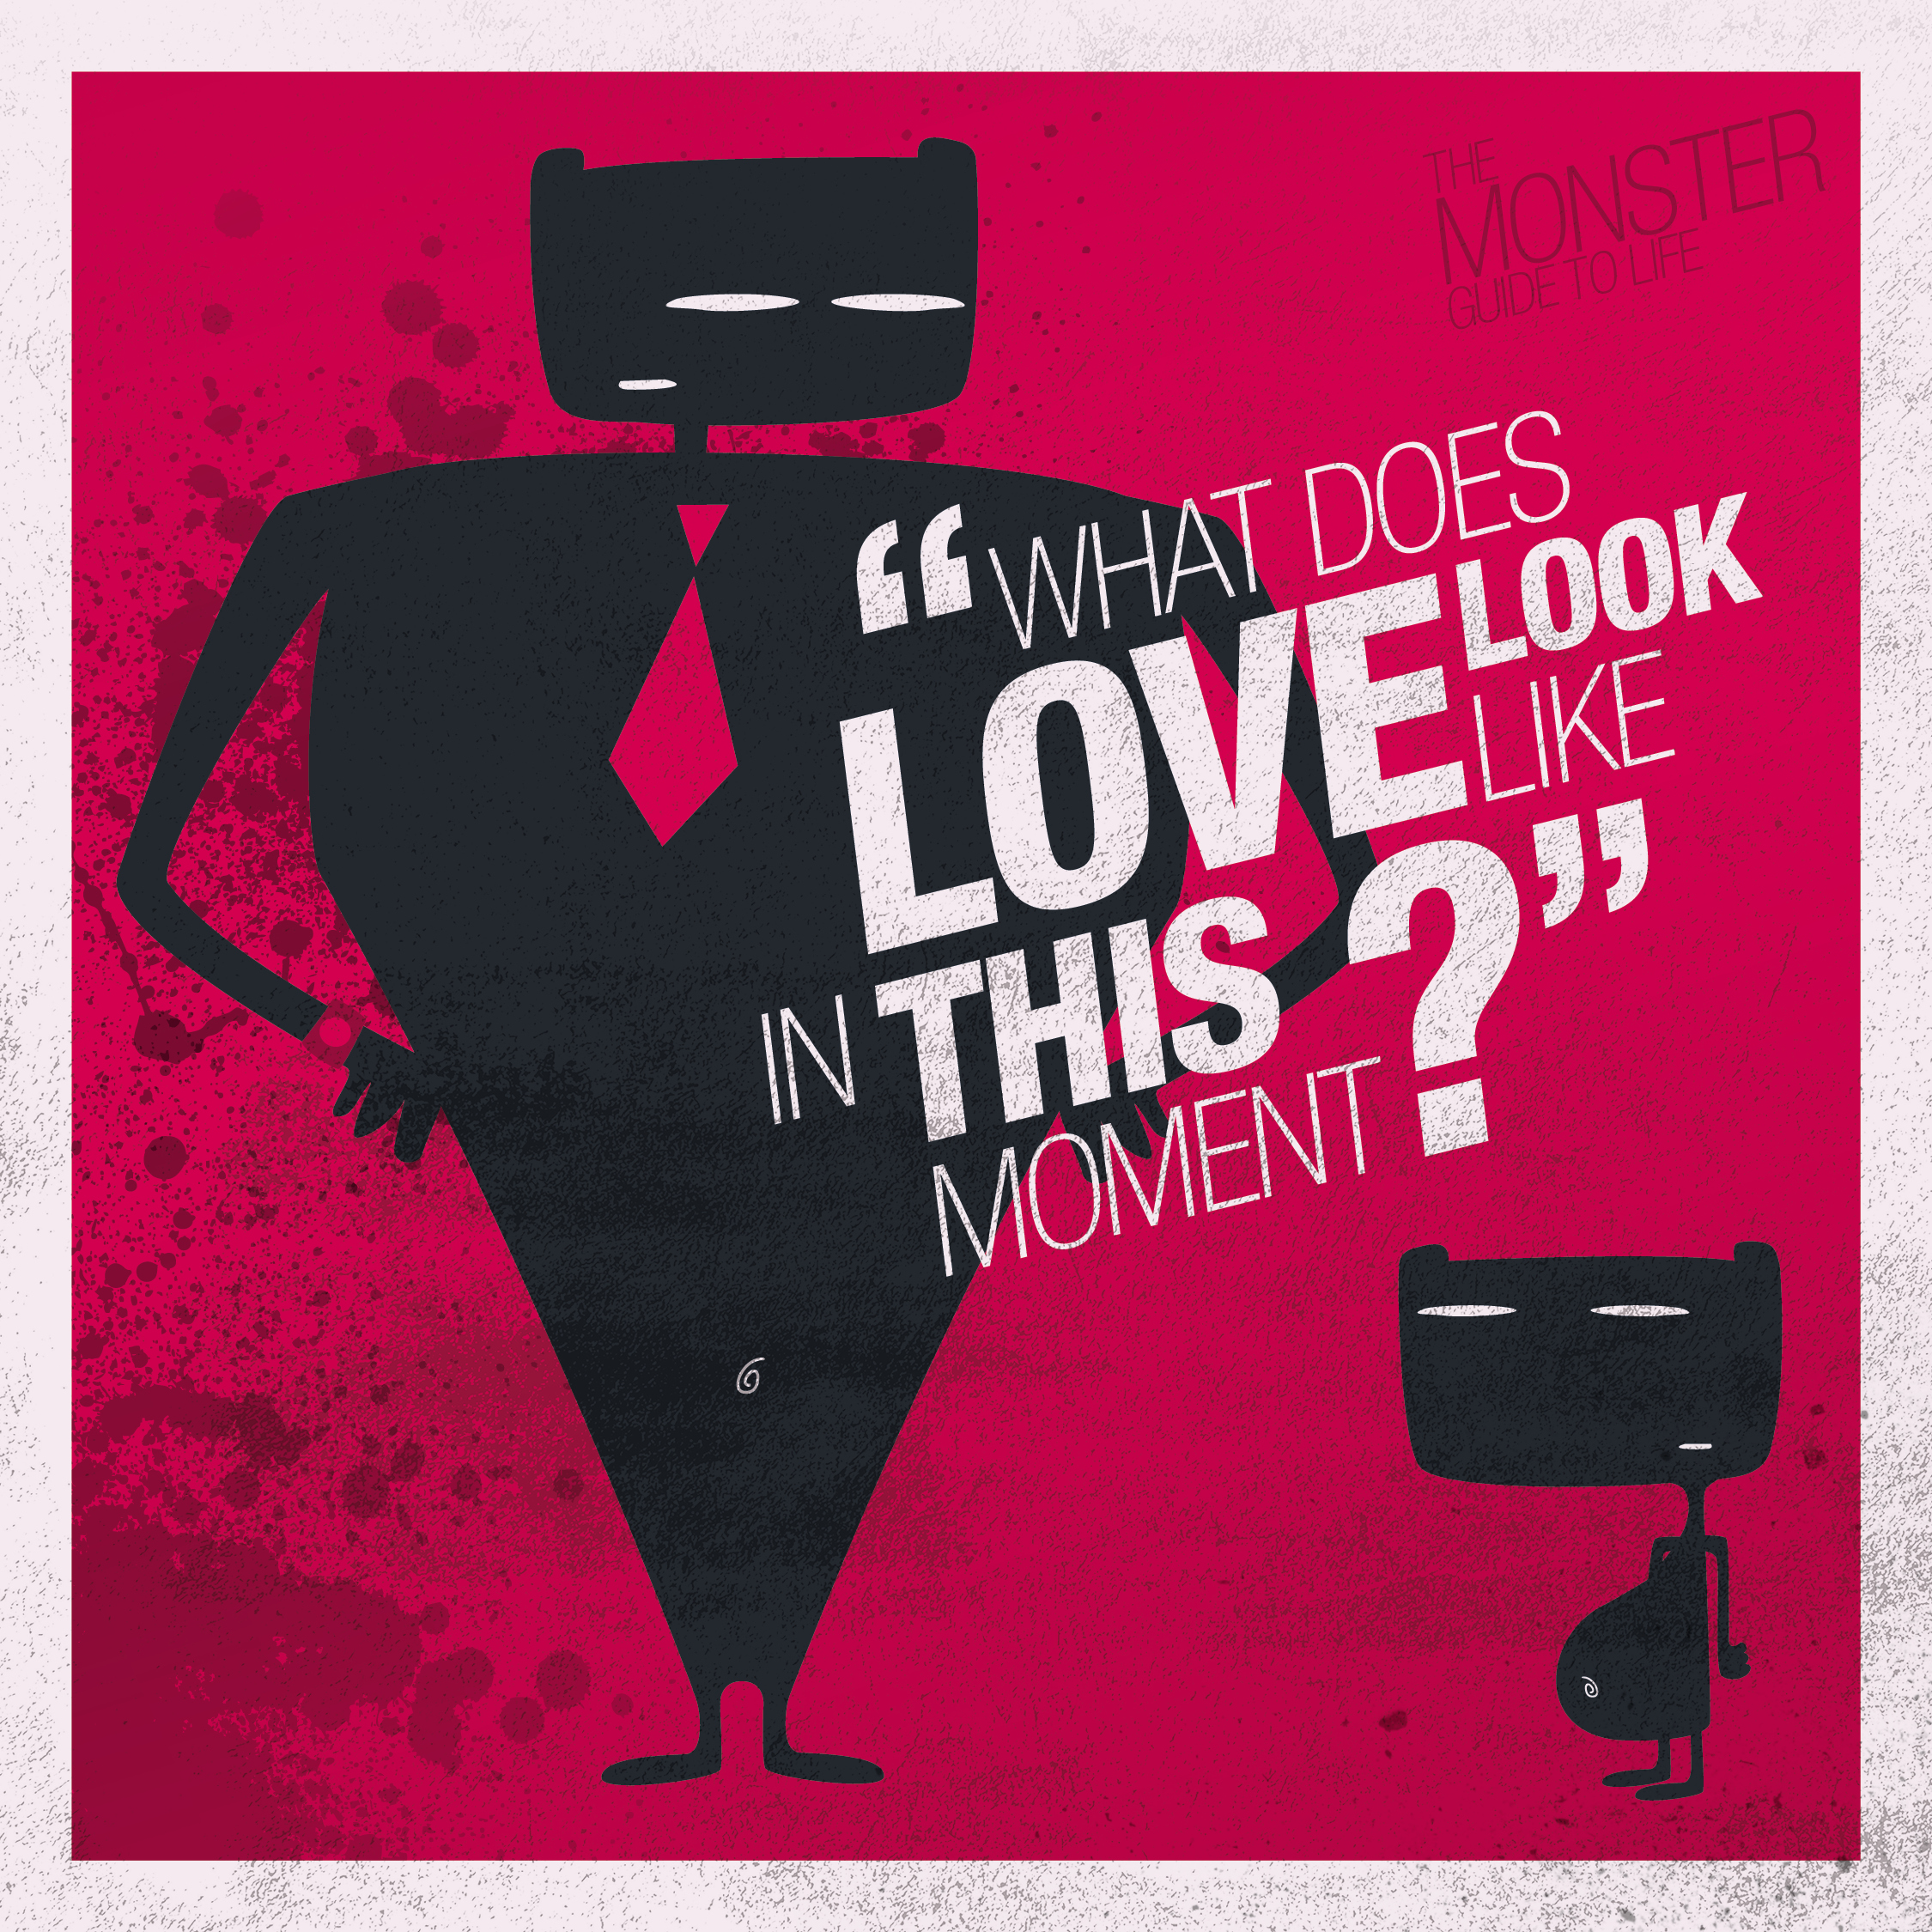 What does love look like in this moment?